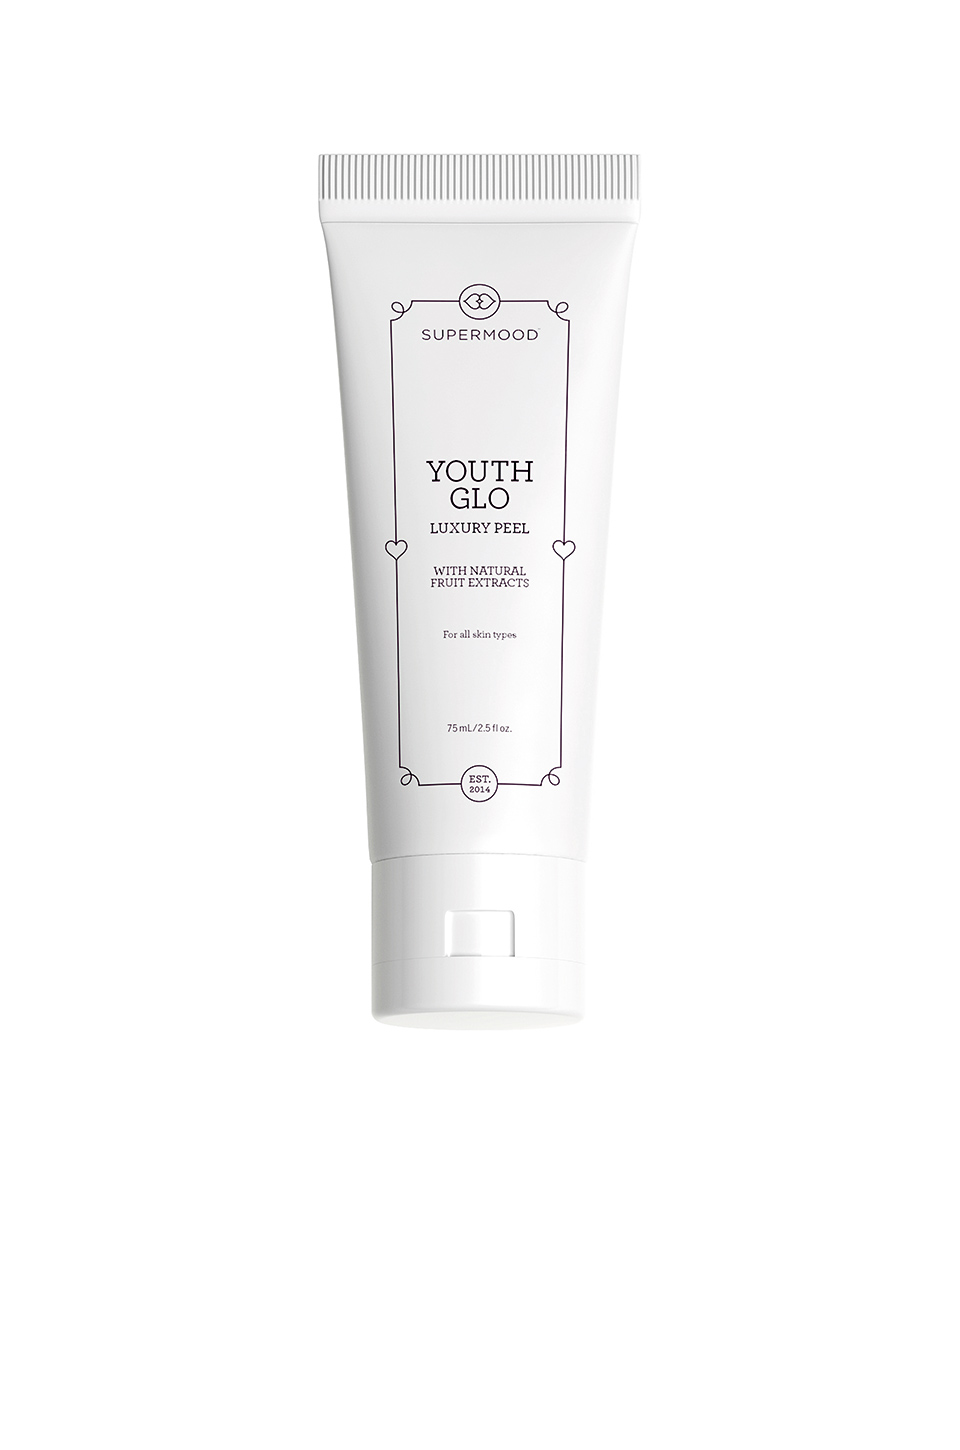 SUPERMOOD Youth Glo The Luxury Peel in